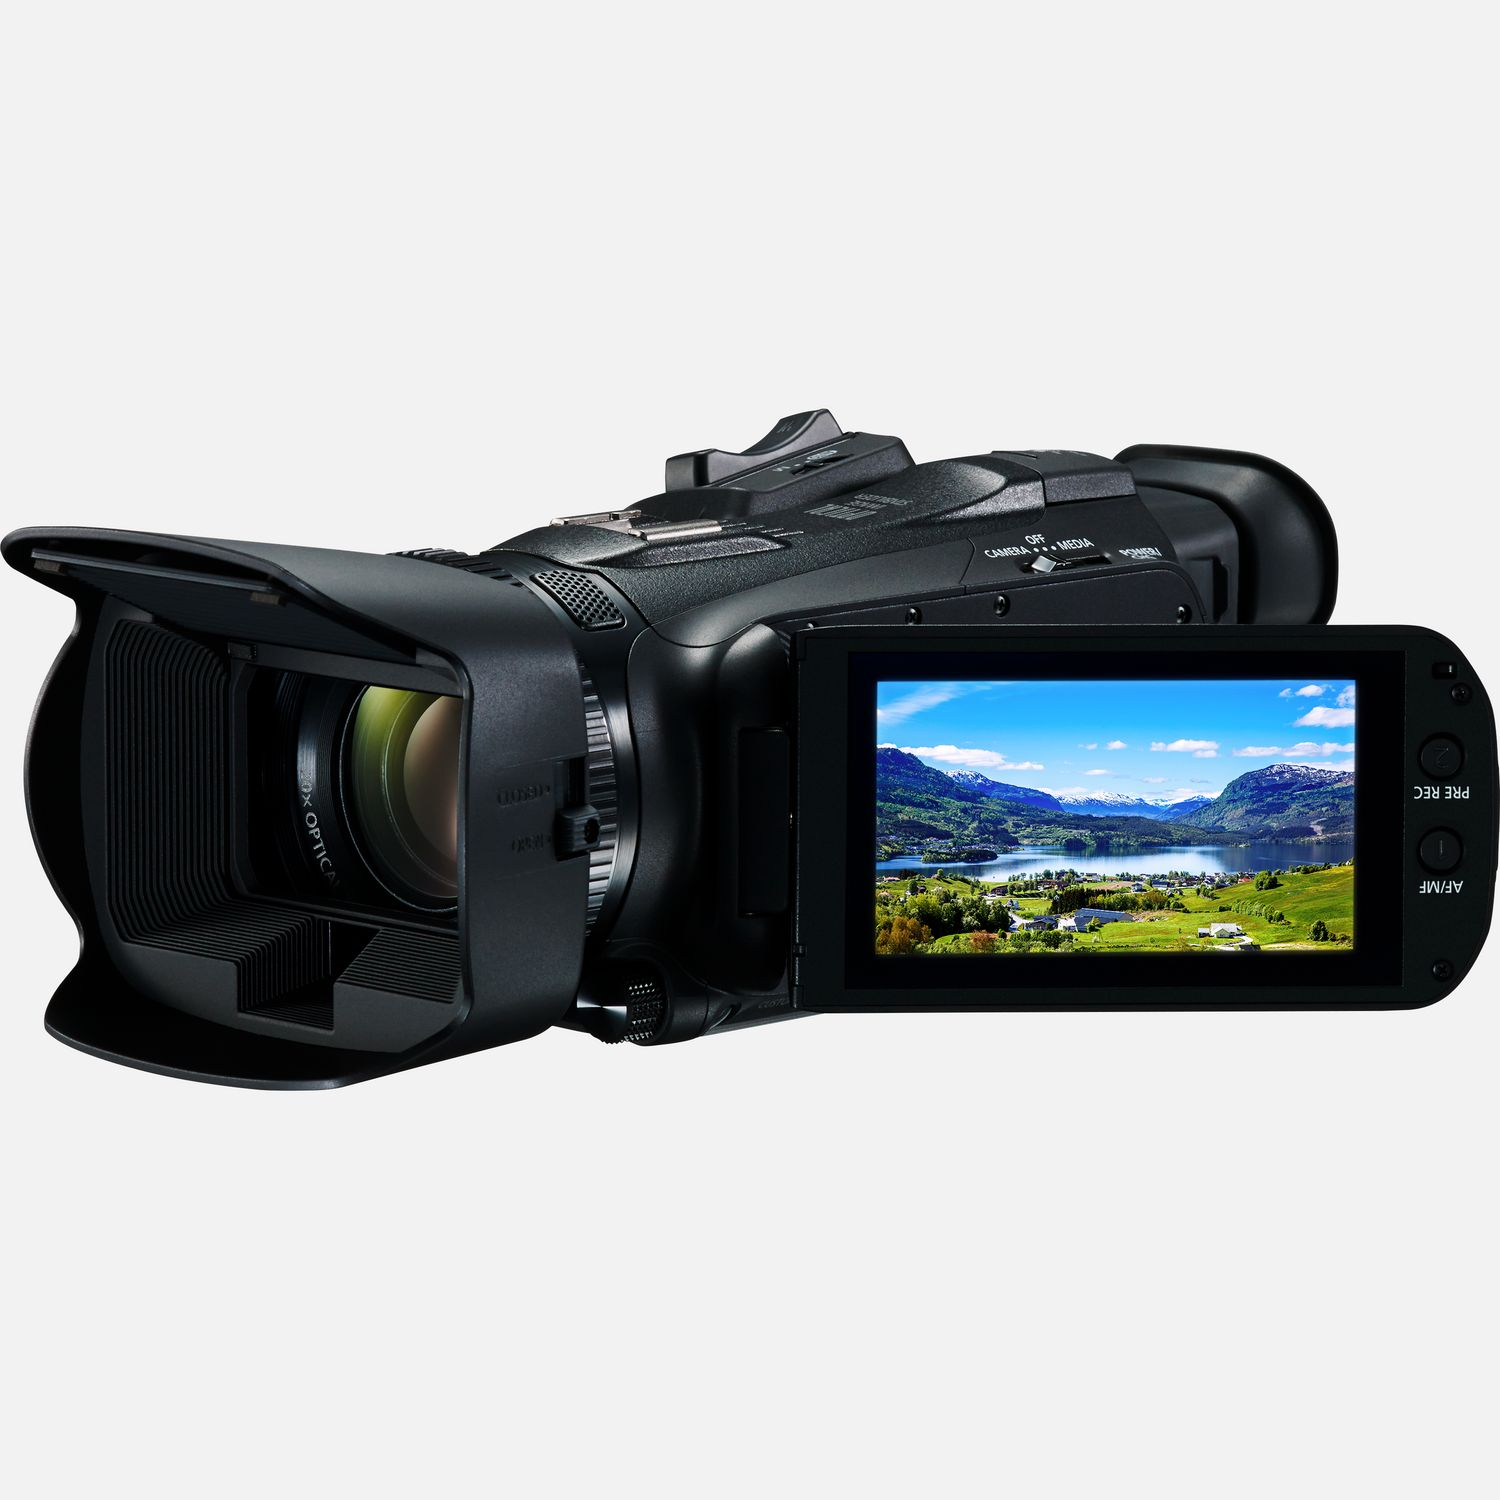 Image of Canon LEGRIA HF G50 Camcorder